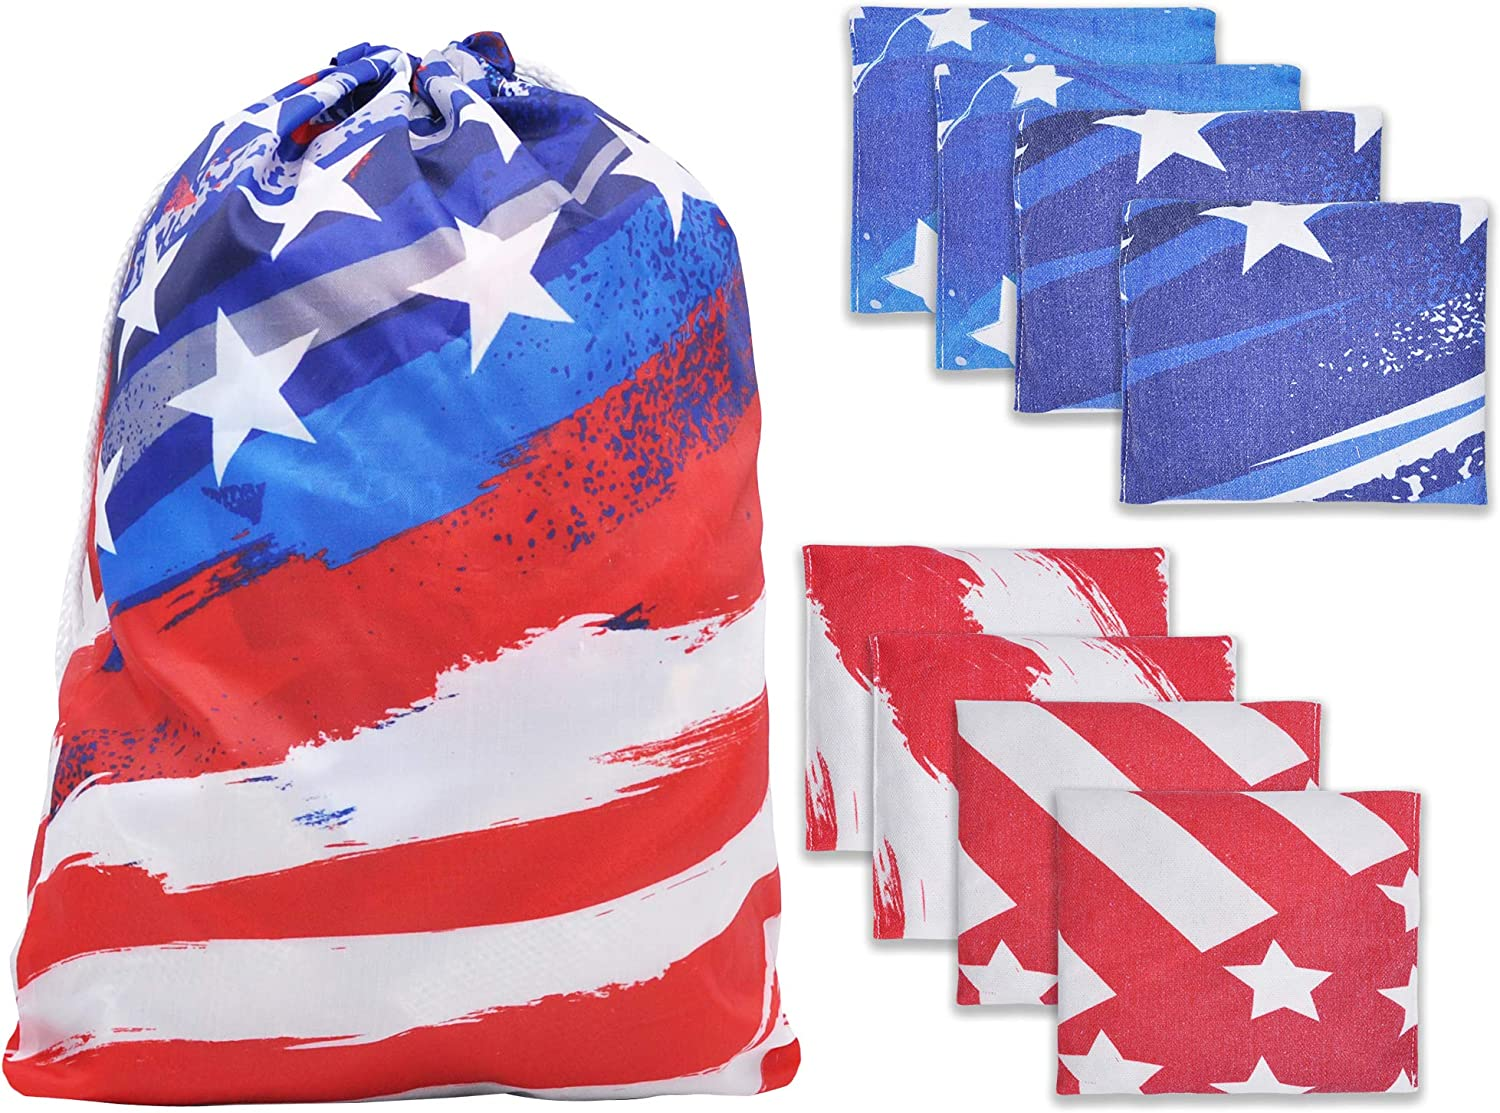 """JOYIN 8 Cornhole Bean Bags 6"""" Weather Resistant with American Flag Tote Bag for Outdoor Parties Corn Hole Toss Games, Cookouts, Barbecues, Reunions, Tailgates : Sports & Outdoors"""